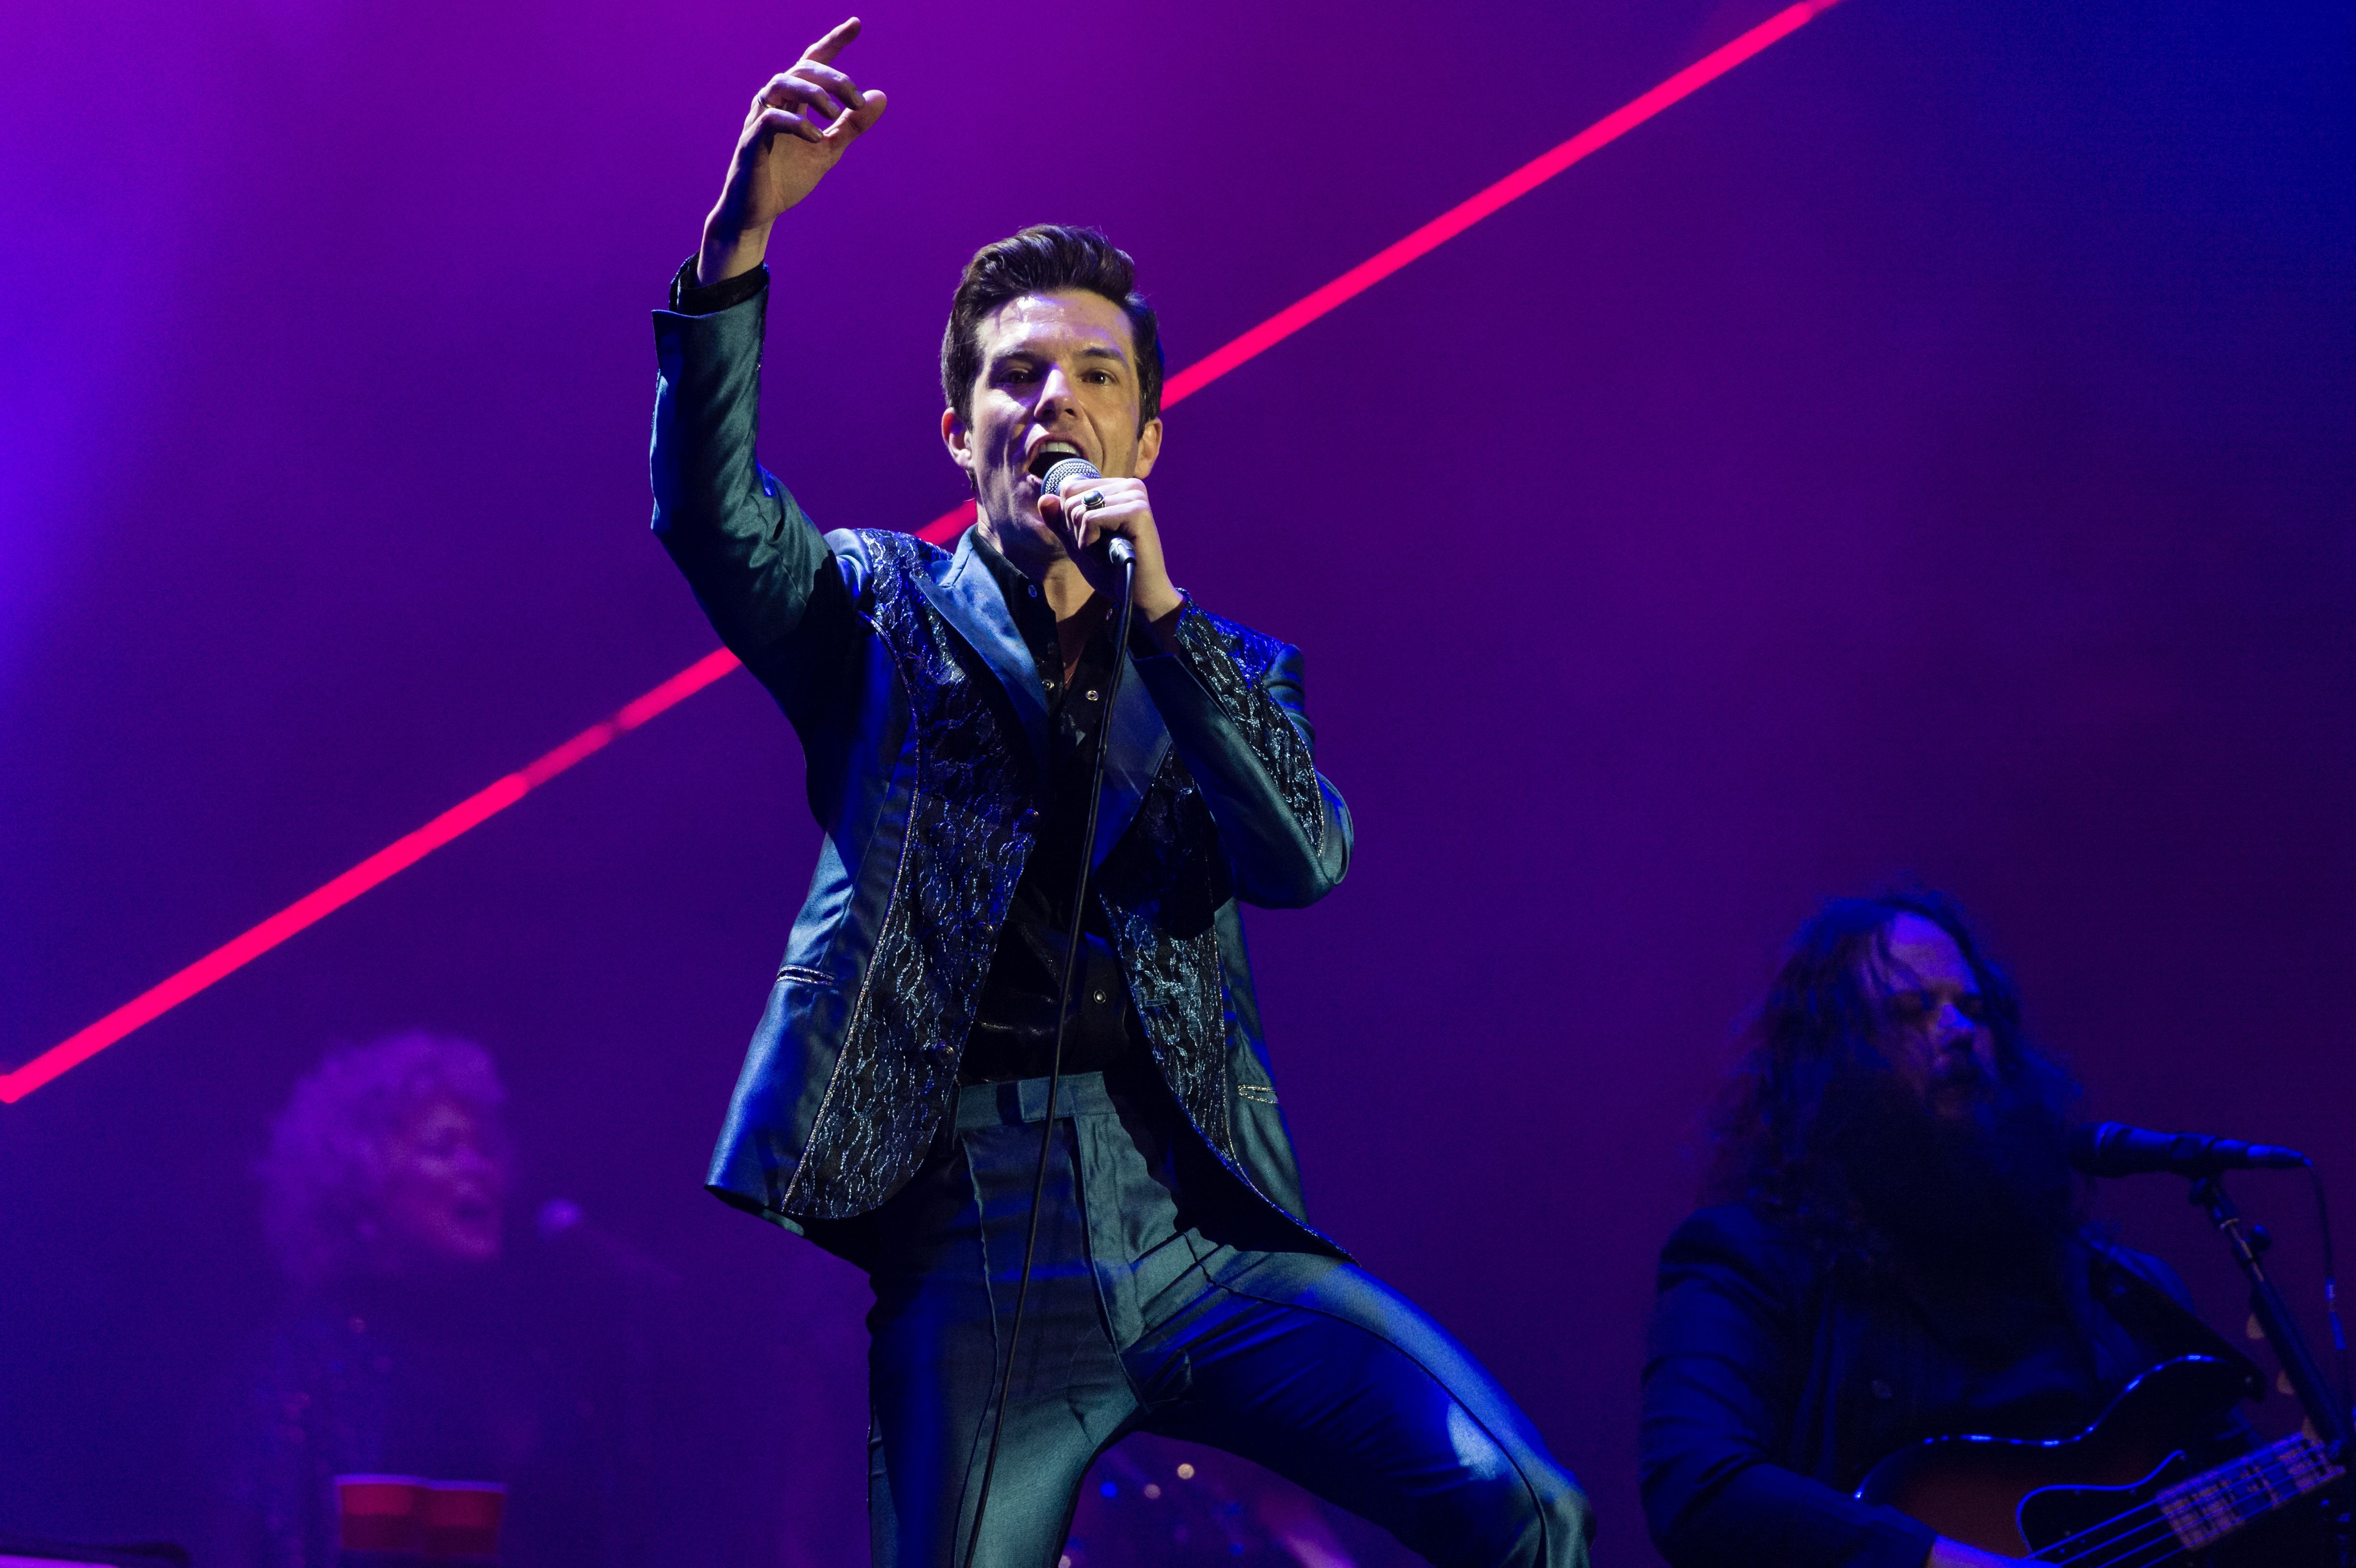 The Killers New Album 2020 Will The Killers Tour The UK In 2020? The Glastonbury Headliners